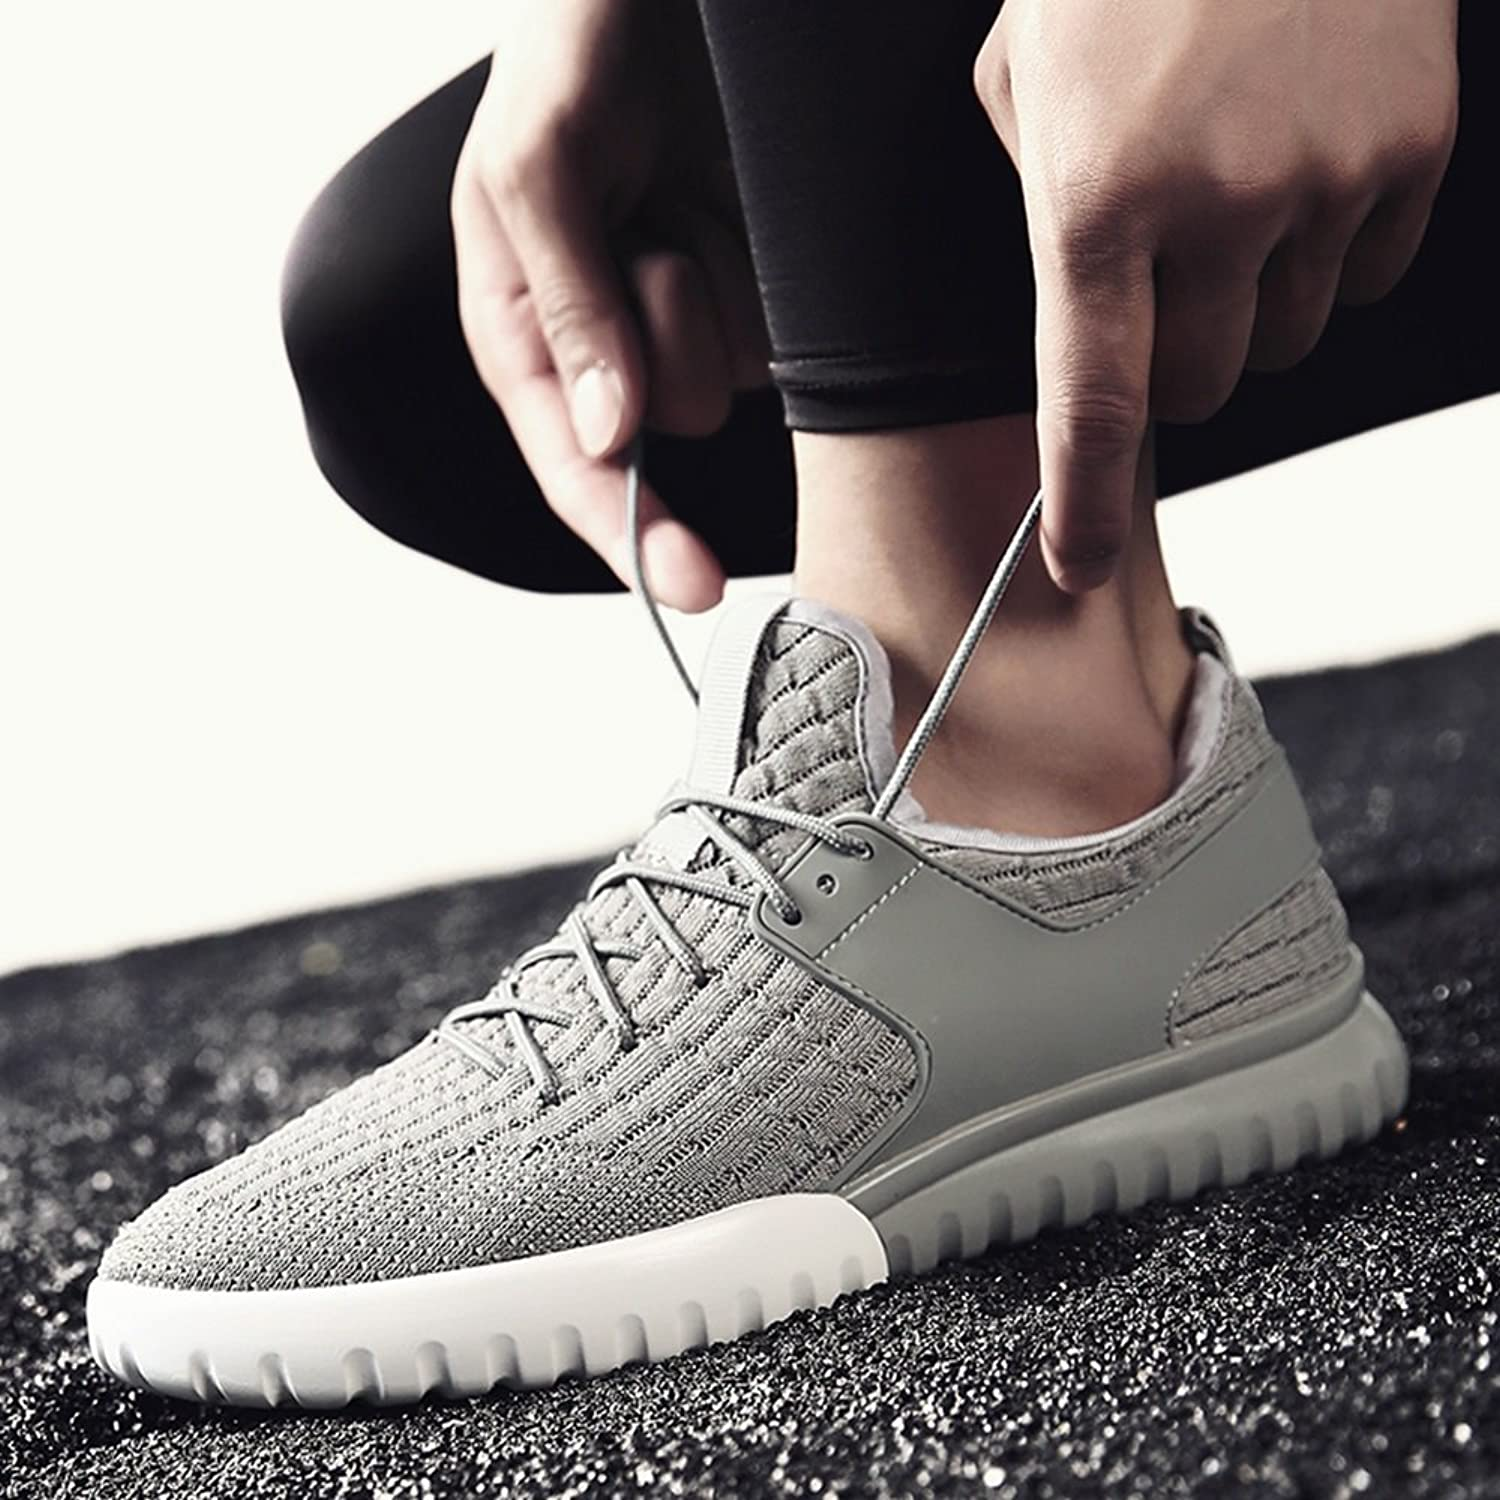 Men's shoes Feifei Leisure Spring and Autumn Wear-Resistant Fashion Personality Plate shoes 3 colors (Size Multiple Choice)